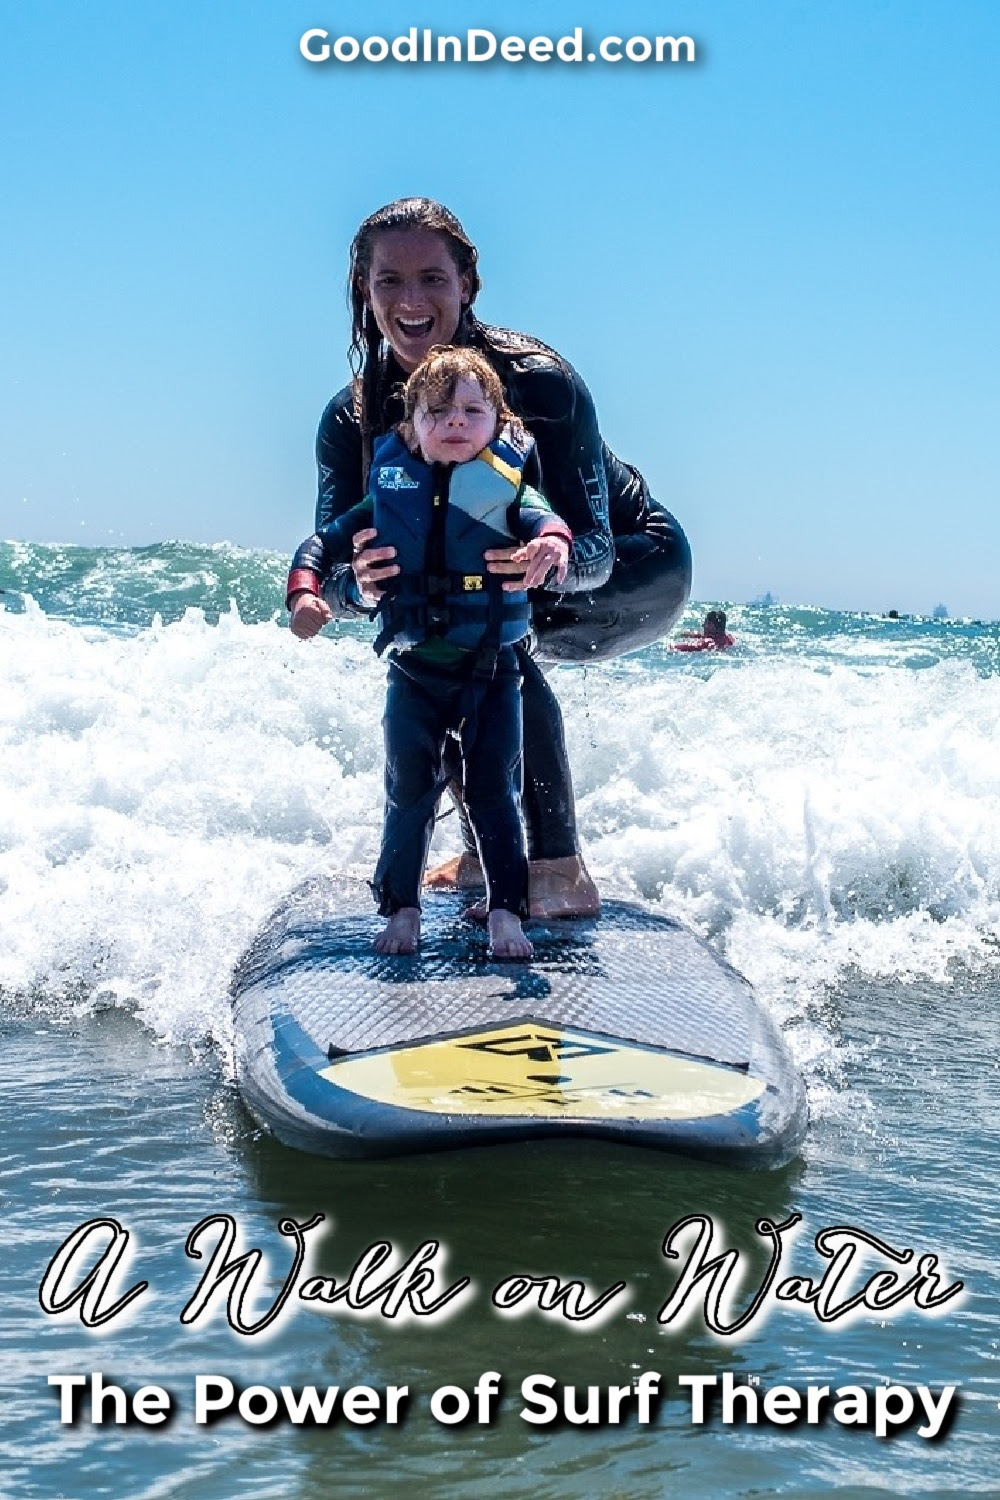 Supporting A Walk on Water in SoCal does more than just gives an organization paddle boards and paddles in fun ways.